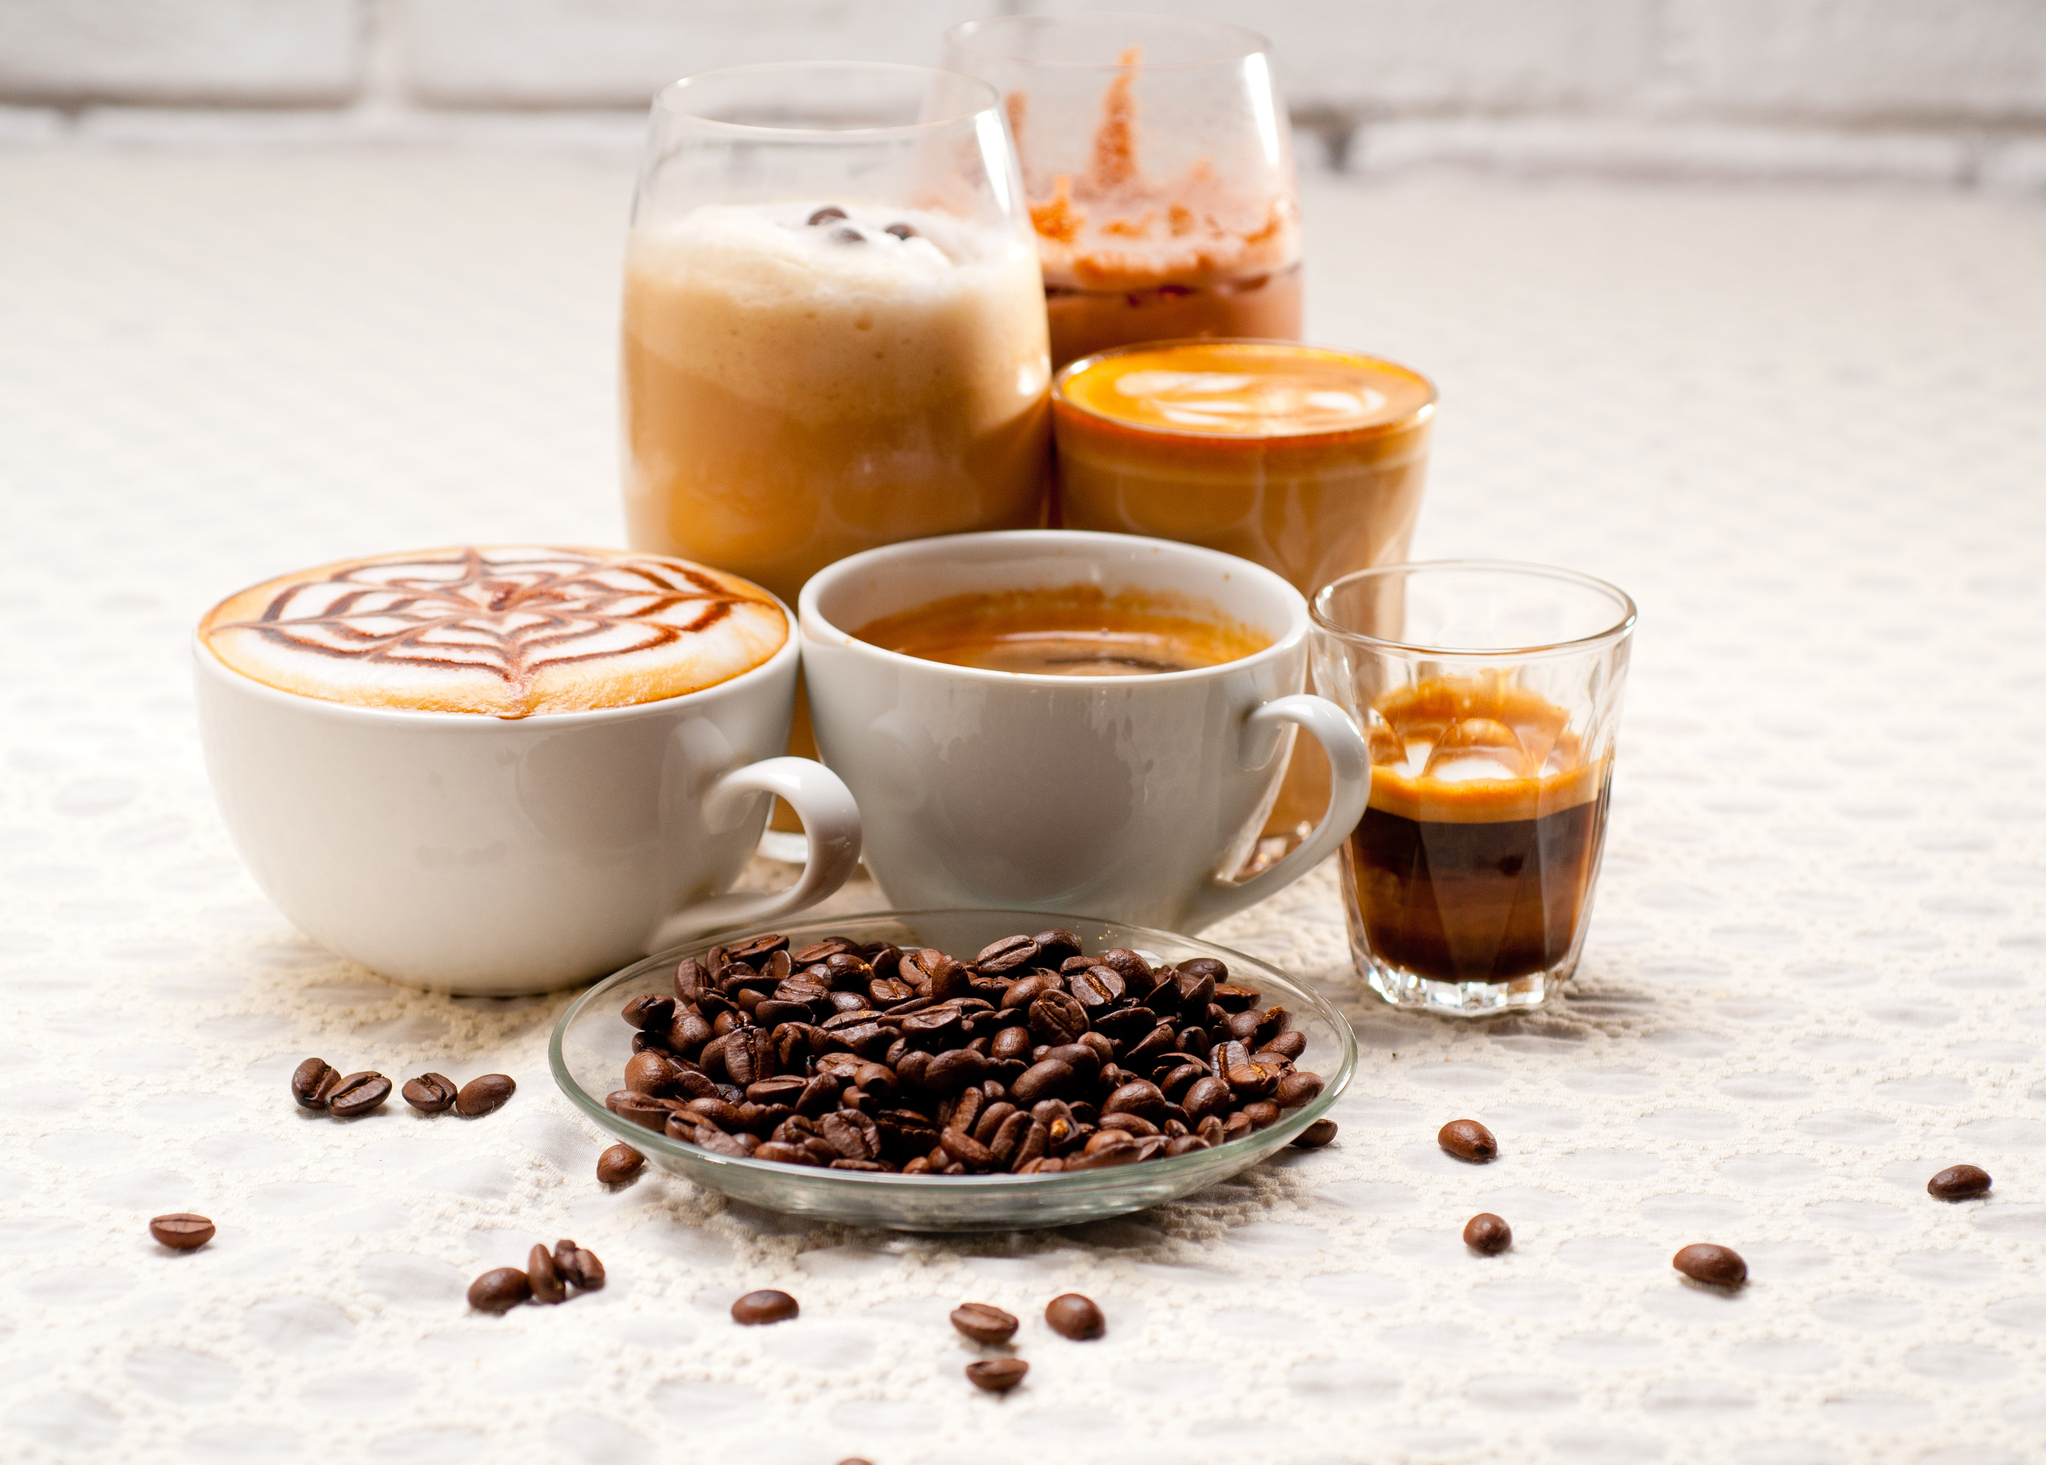 Close-Up Of Coffees With Roasted Coffee Beans Served On Table